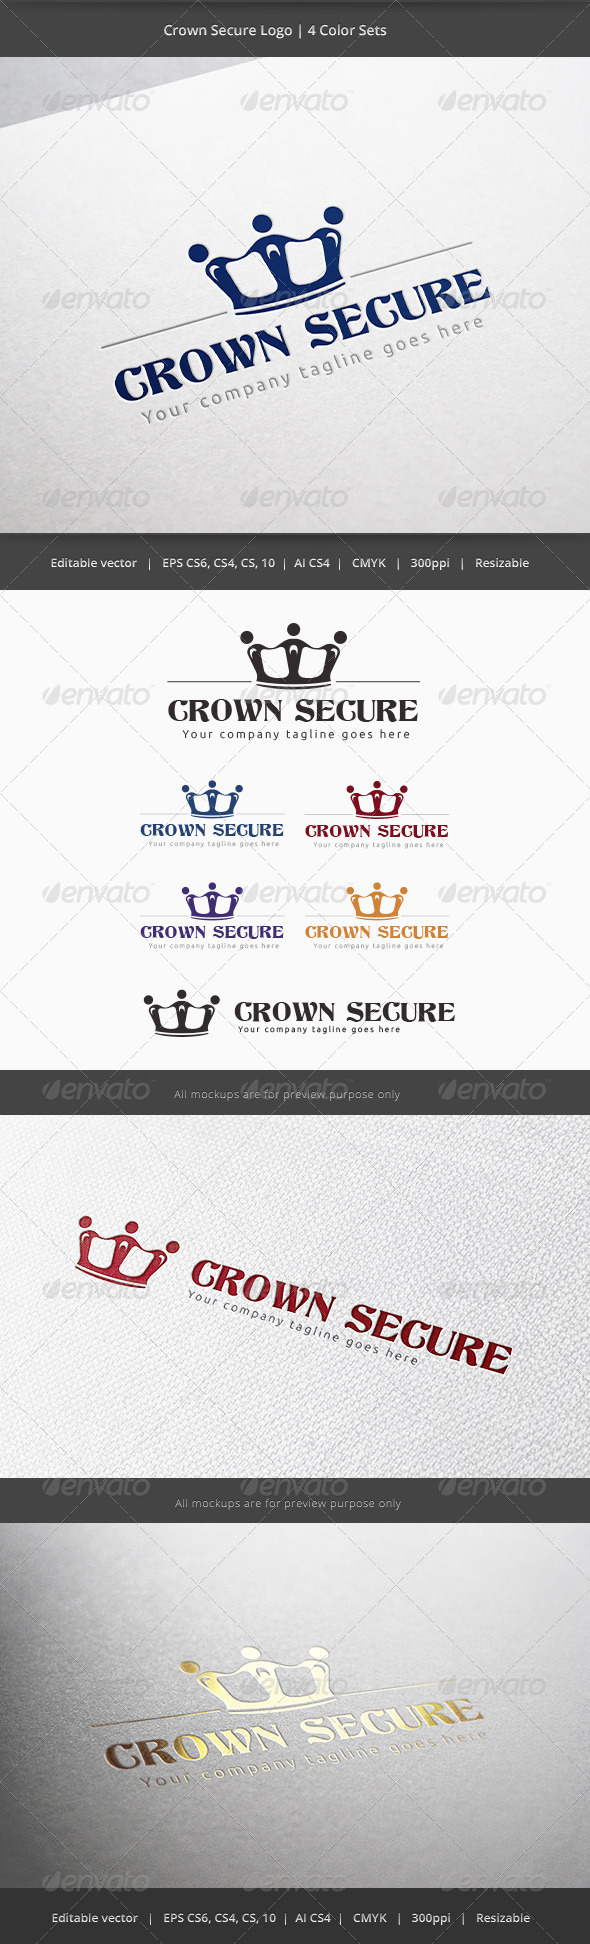 GraphicRiver Crown Secure Logo 6025888